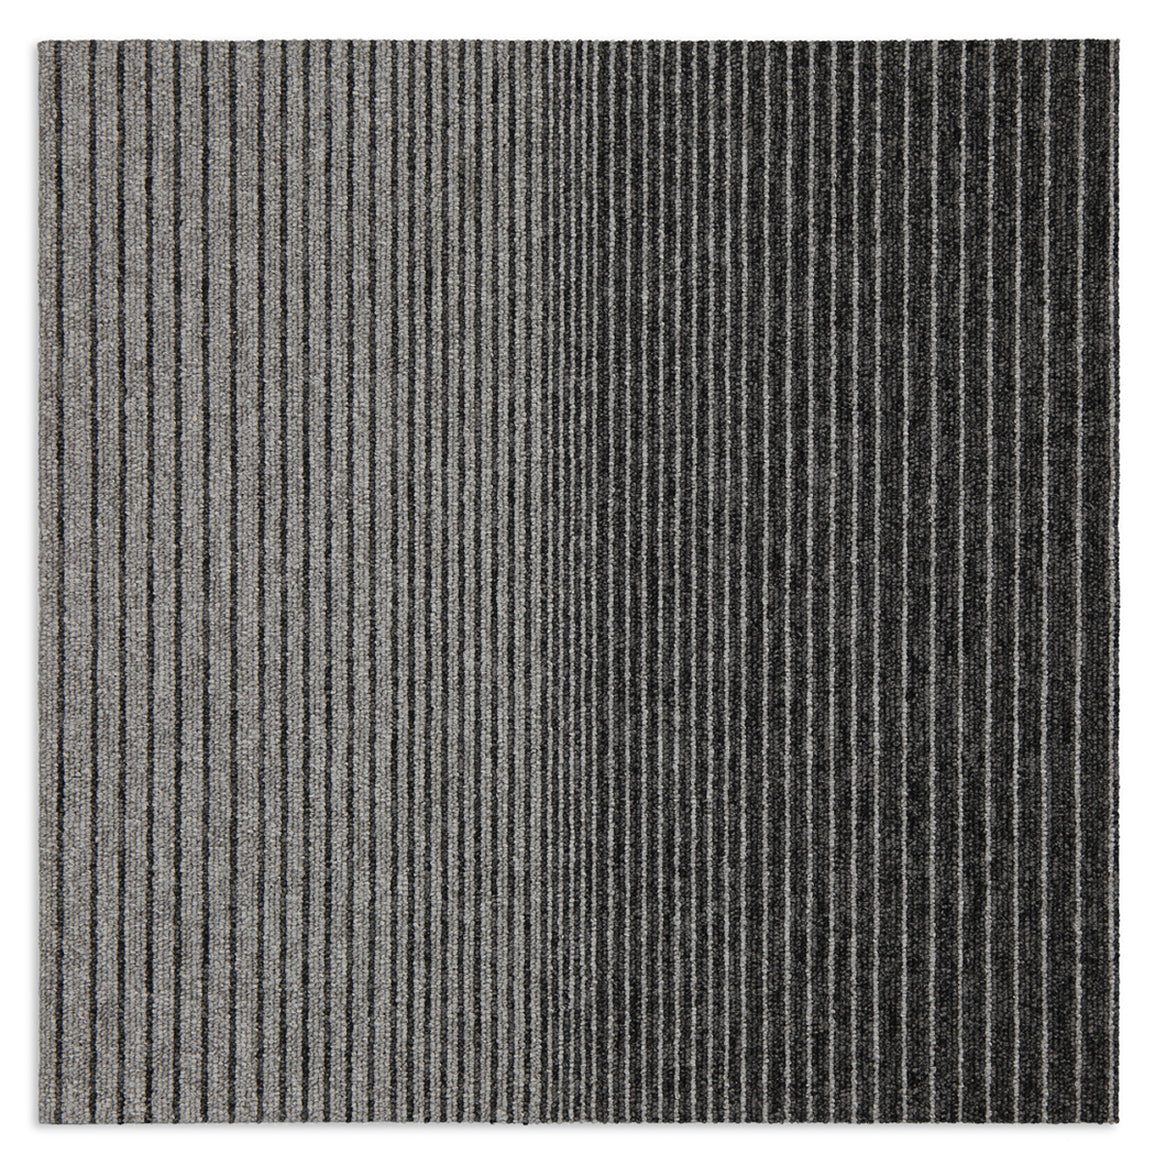 Alfombra Modular SWIFT 914 Gris / Gris Obscuro